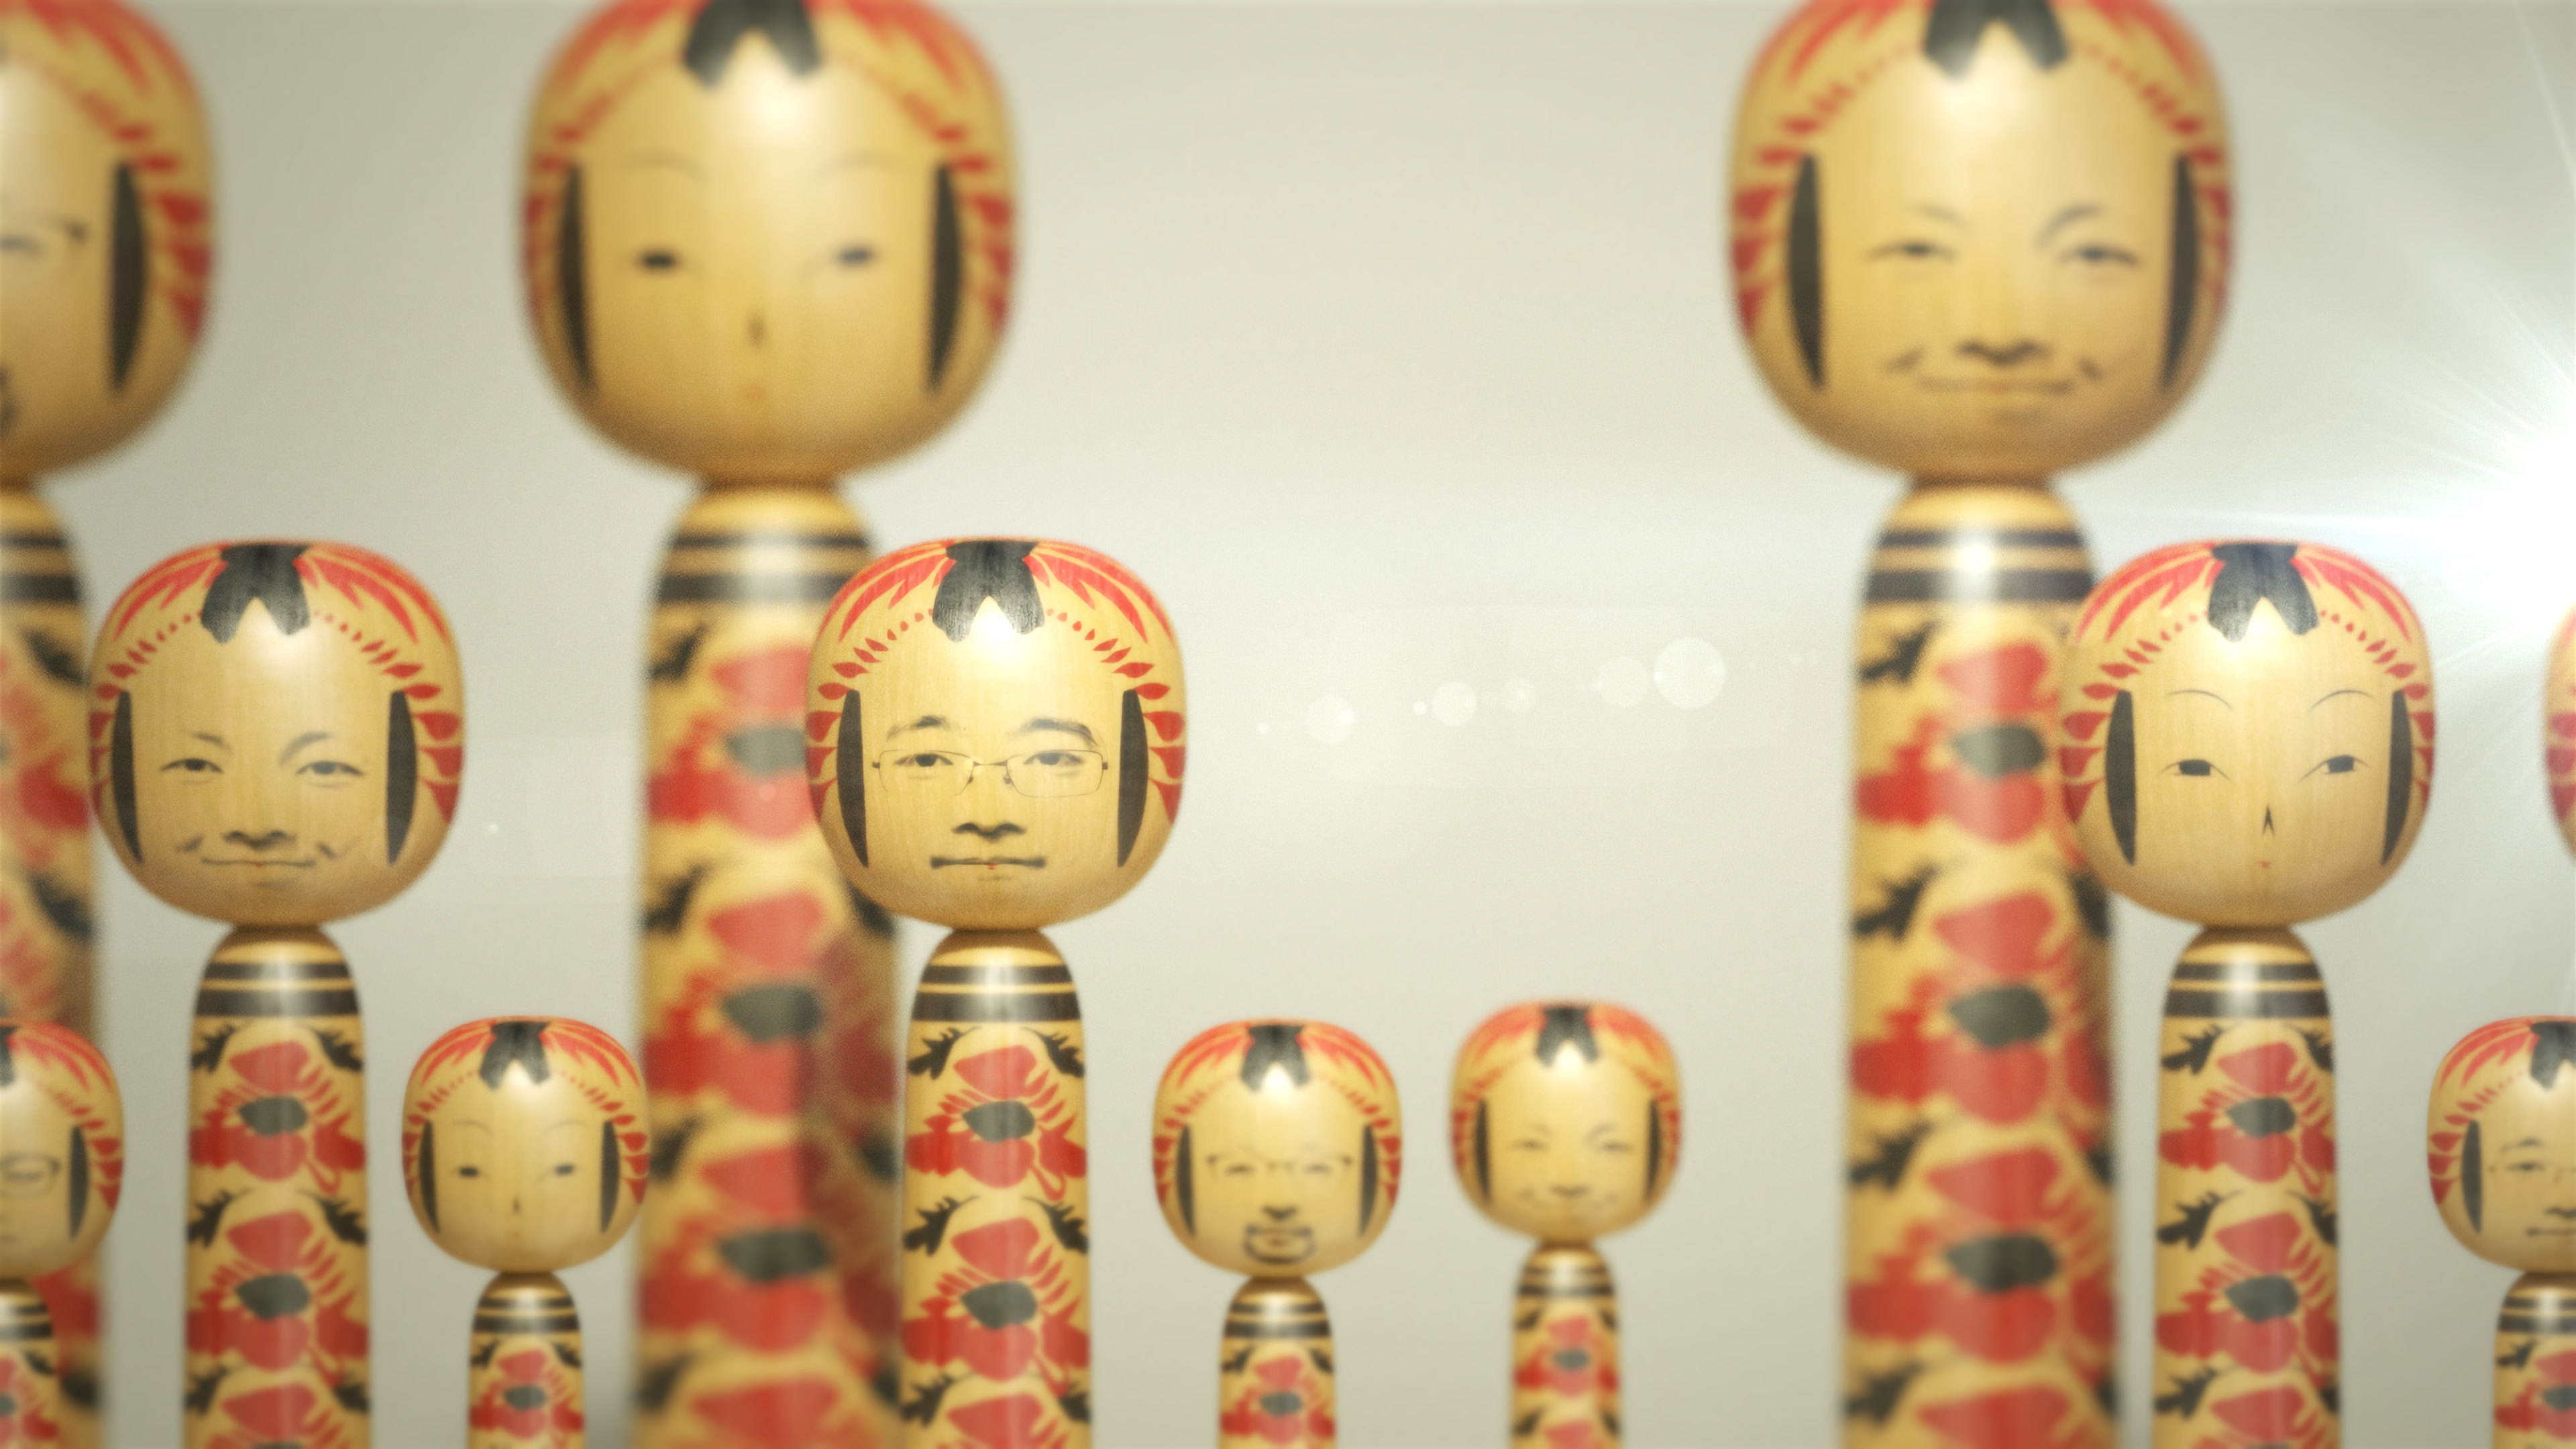 Faces projected on to kokeshi dolls as part of the POPPO exhibition at Japan House. Credit WOW.